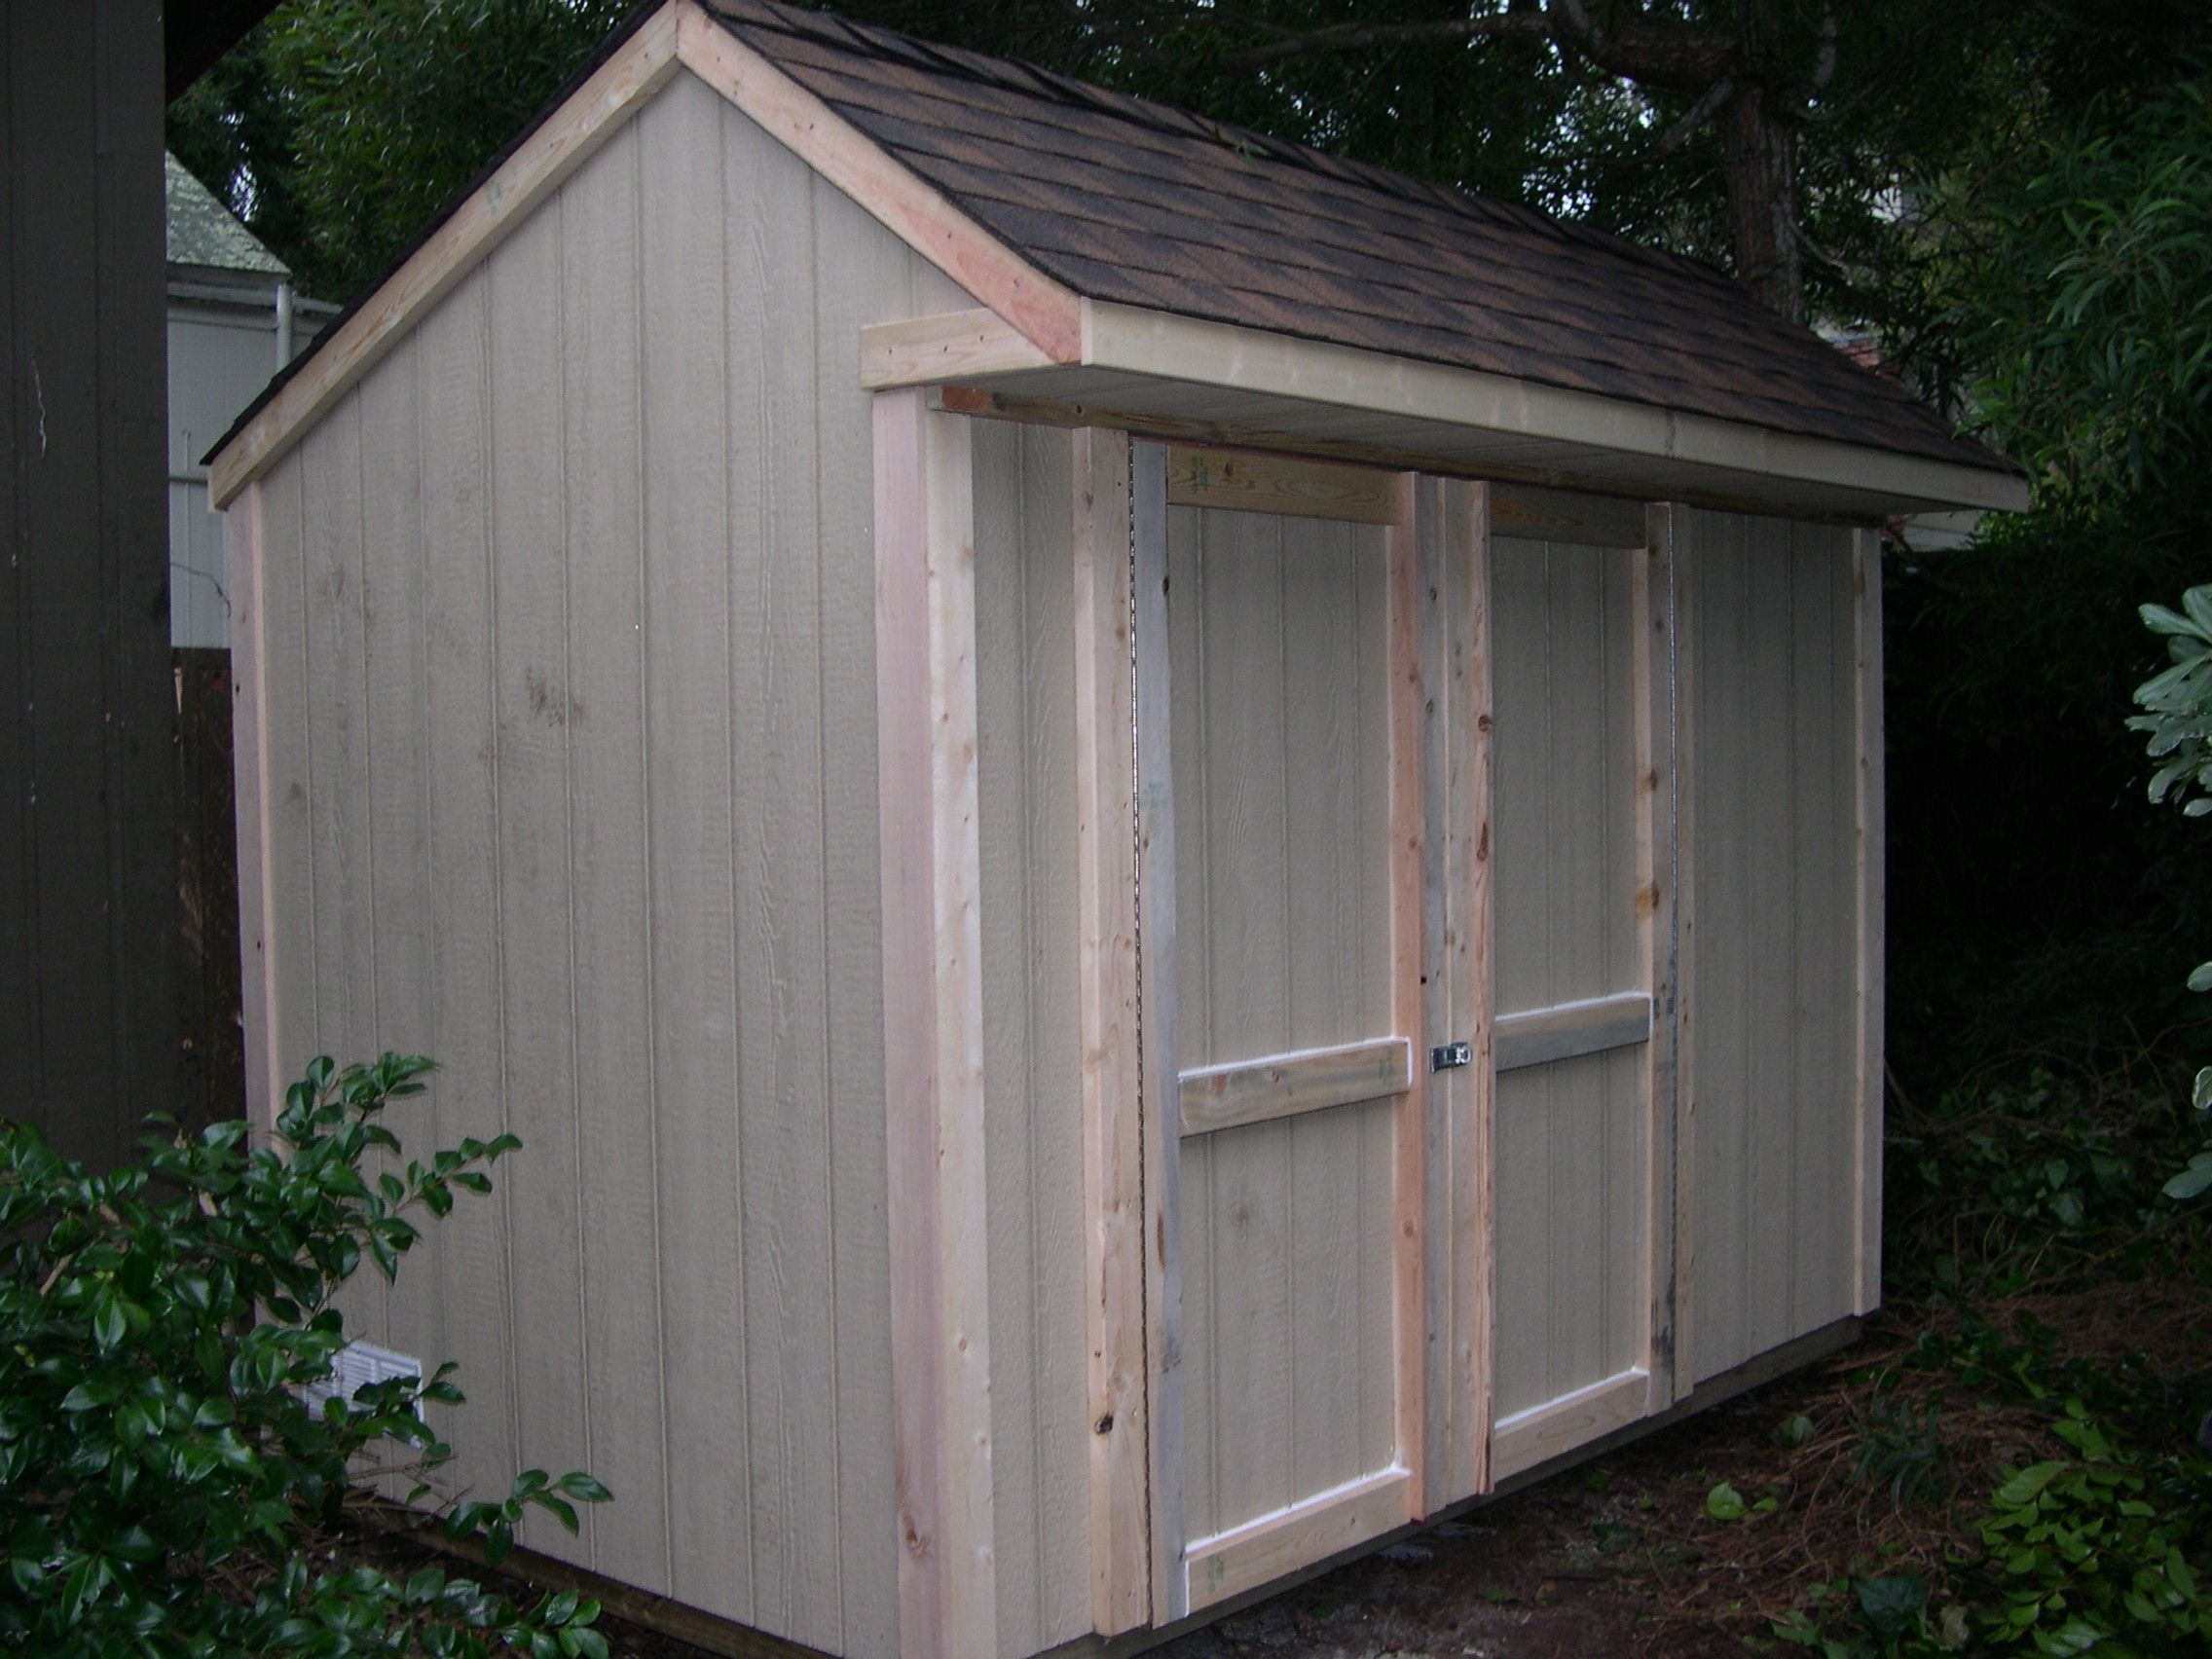 SAMPLE Shed Plans 22, 6x10 Saltbox Roof, Small Shed, DOWNLOAD